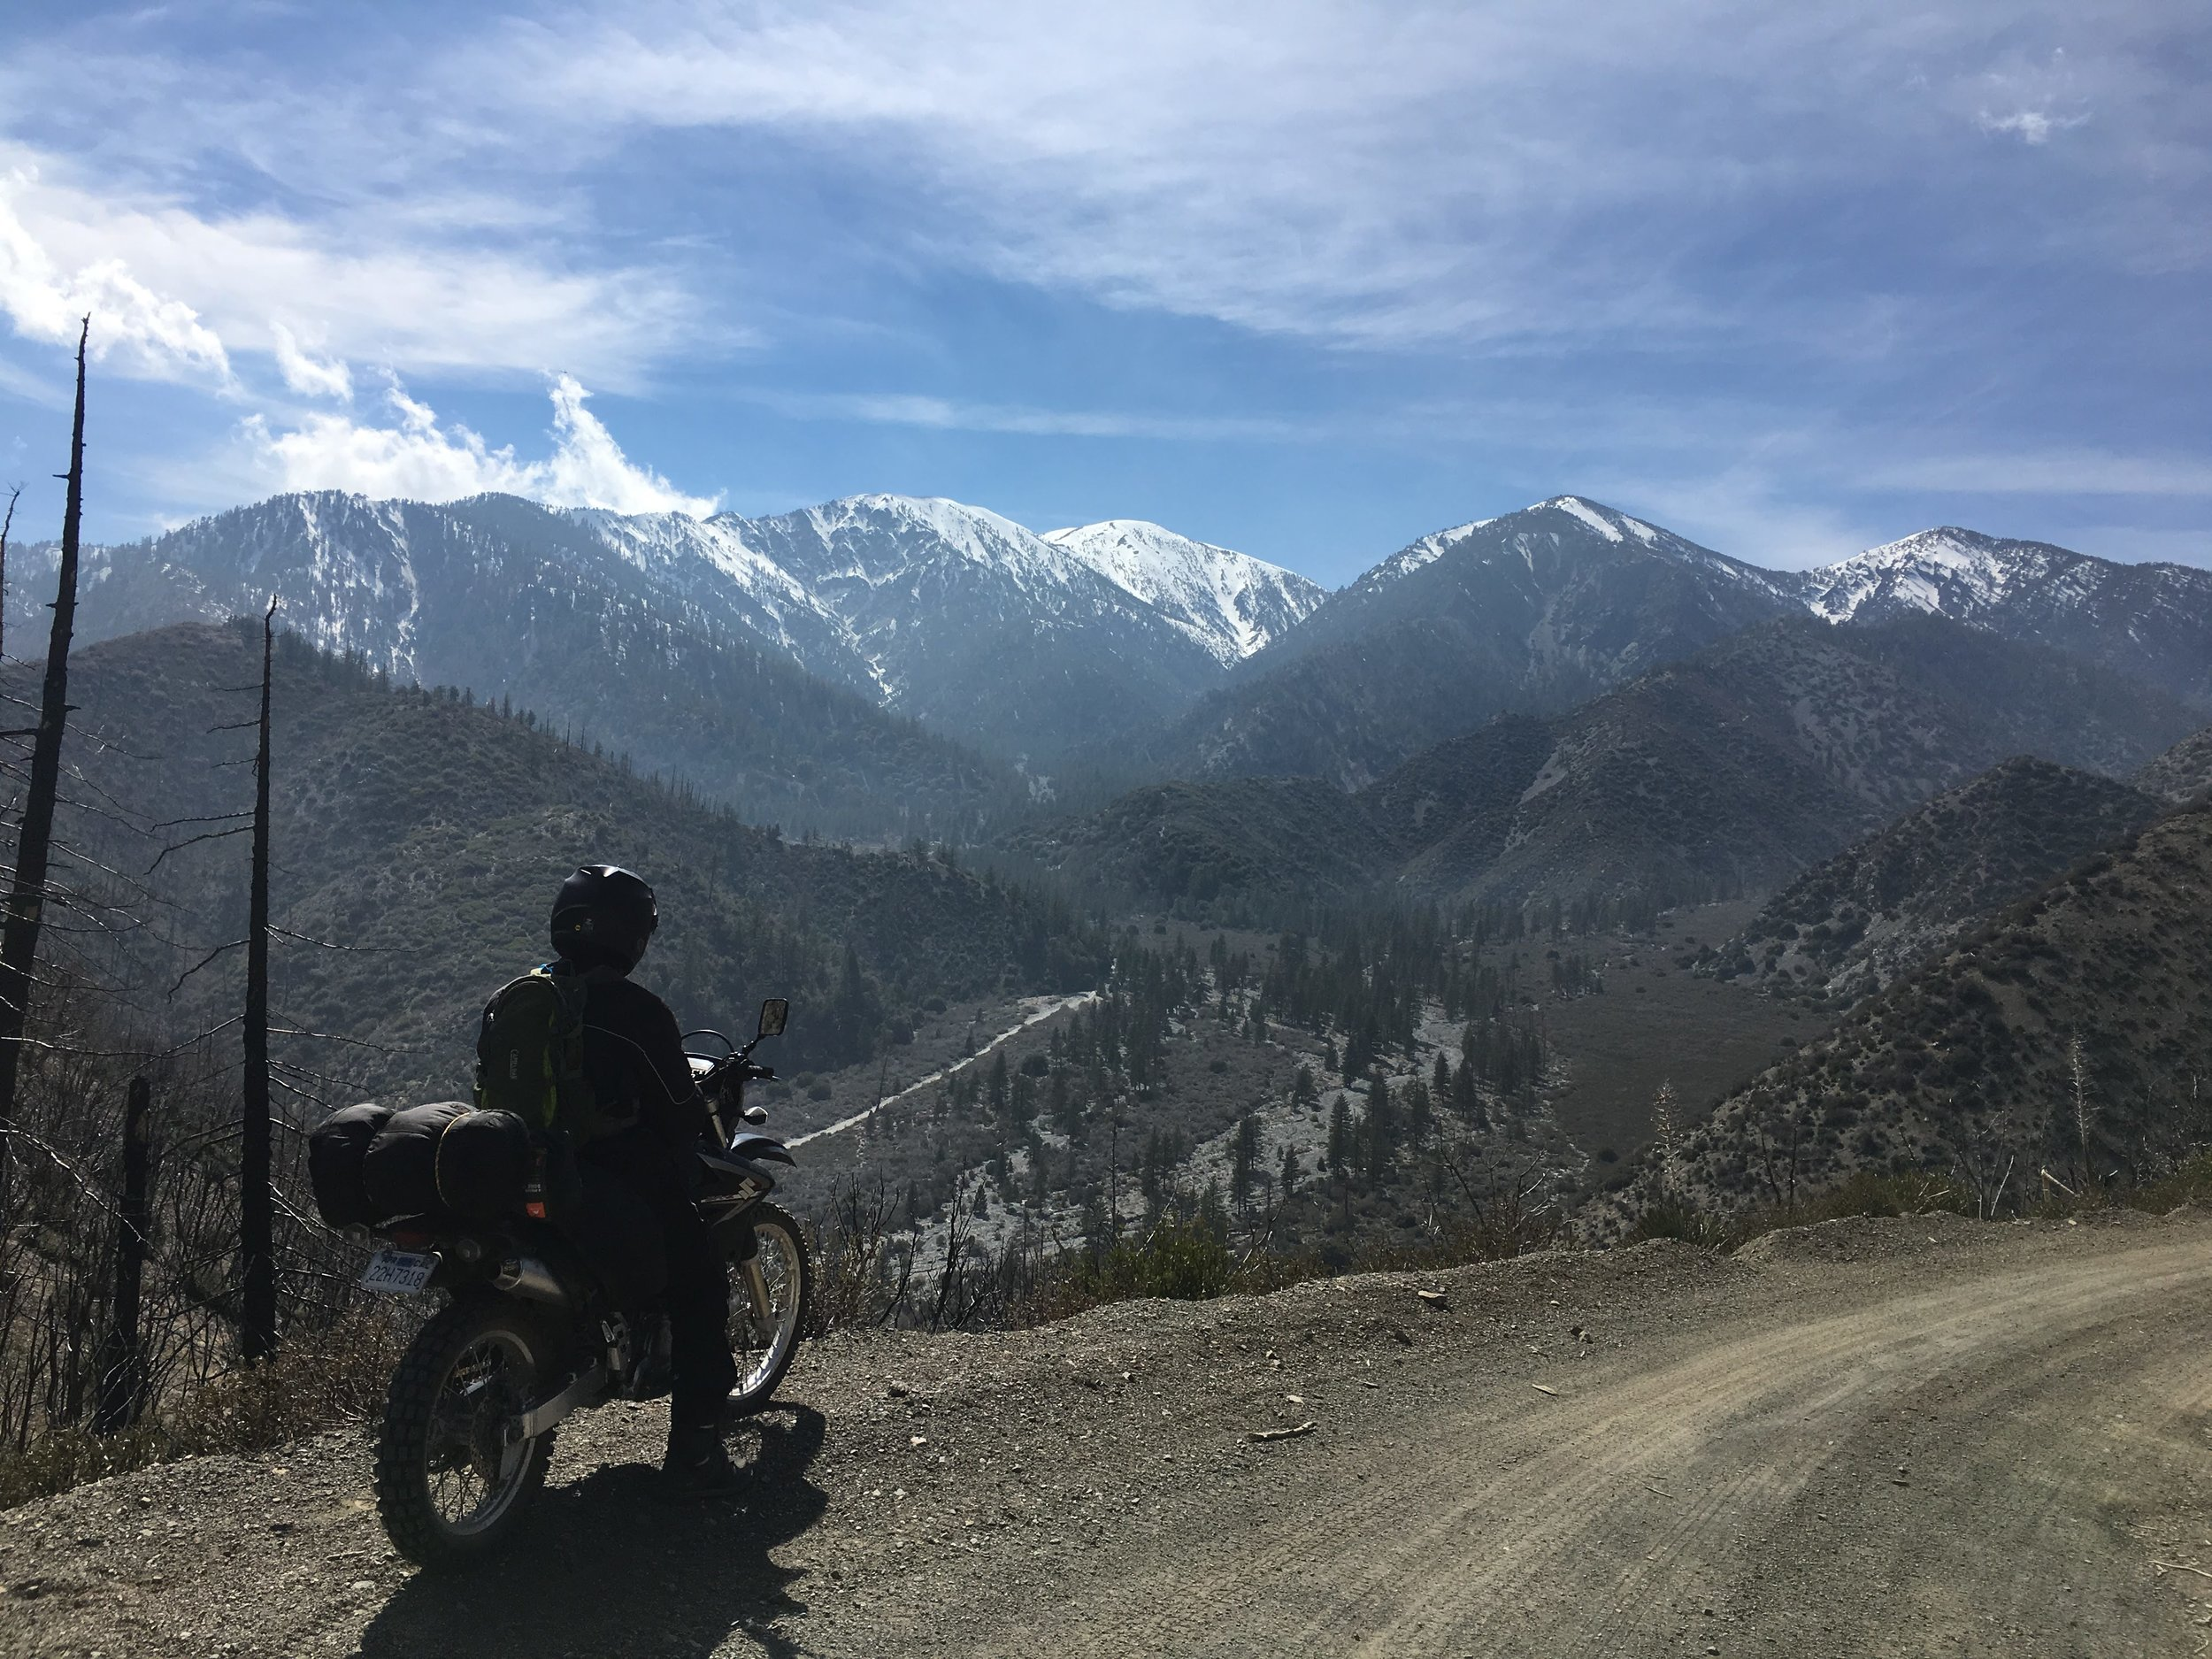 Motorcycle weekend trip with my son, April 2019.